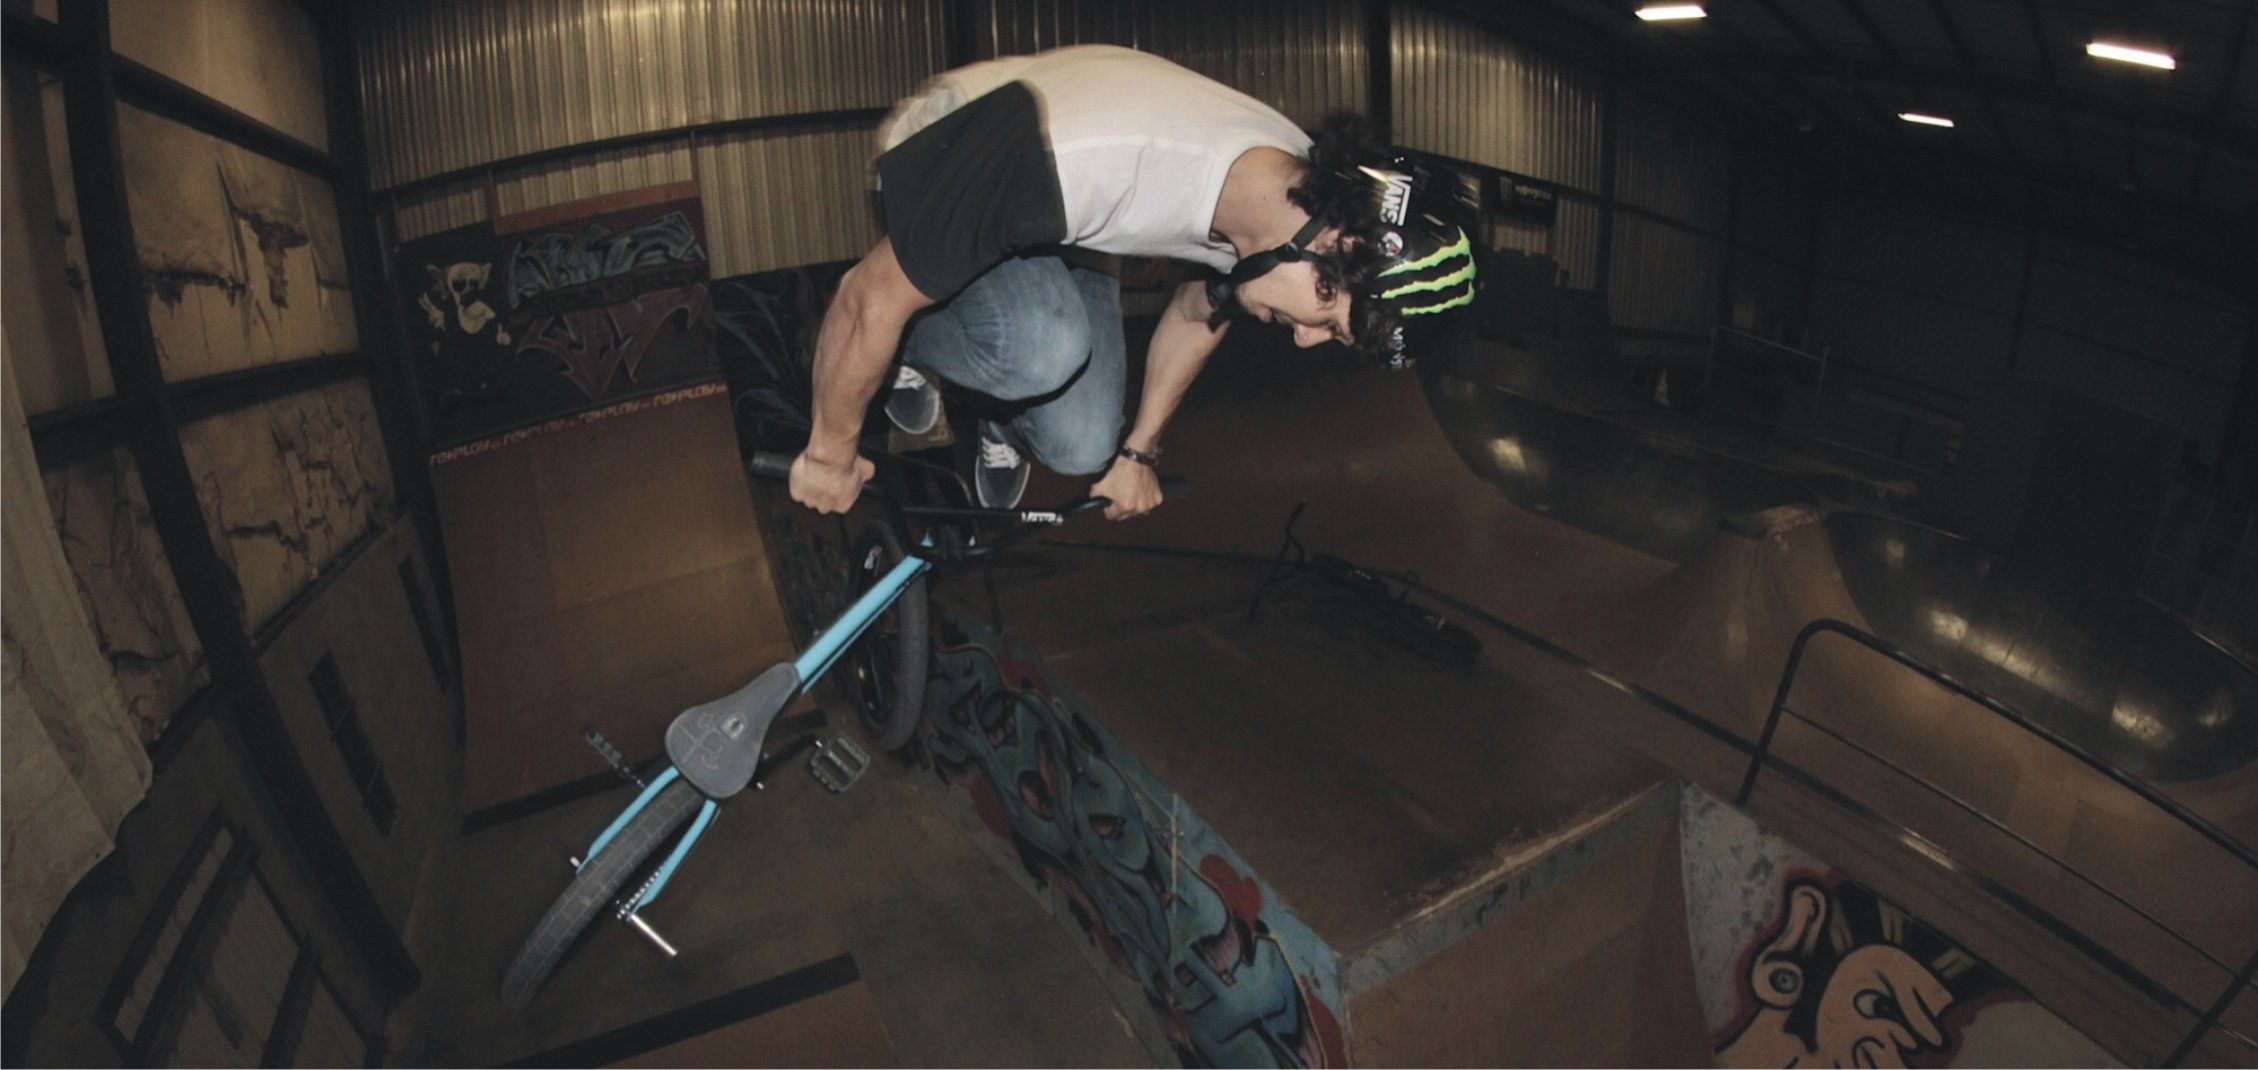 Kevin Peraza talks BMX and his trip to South Africa